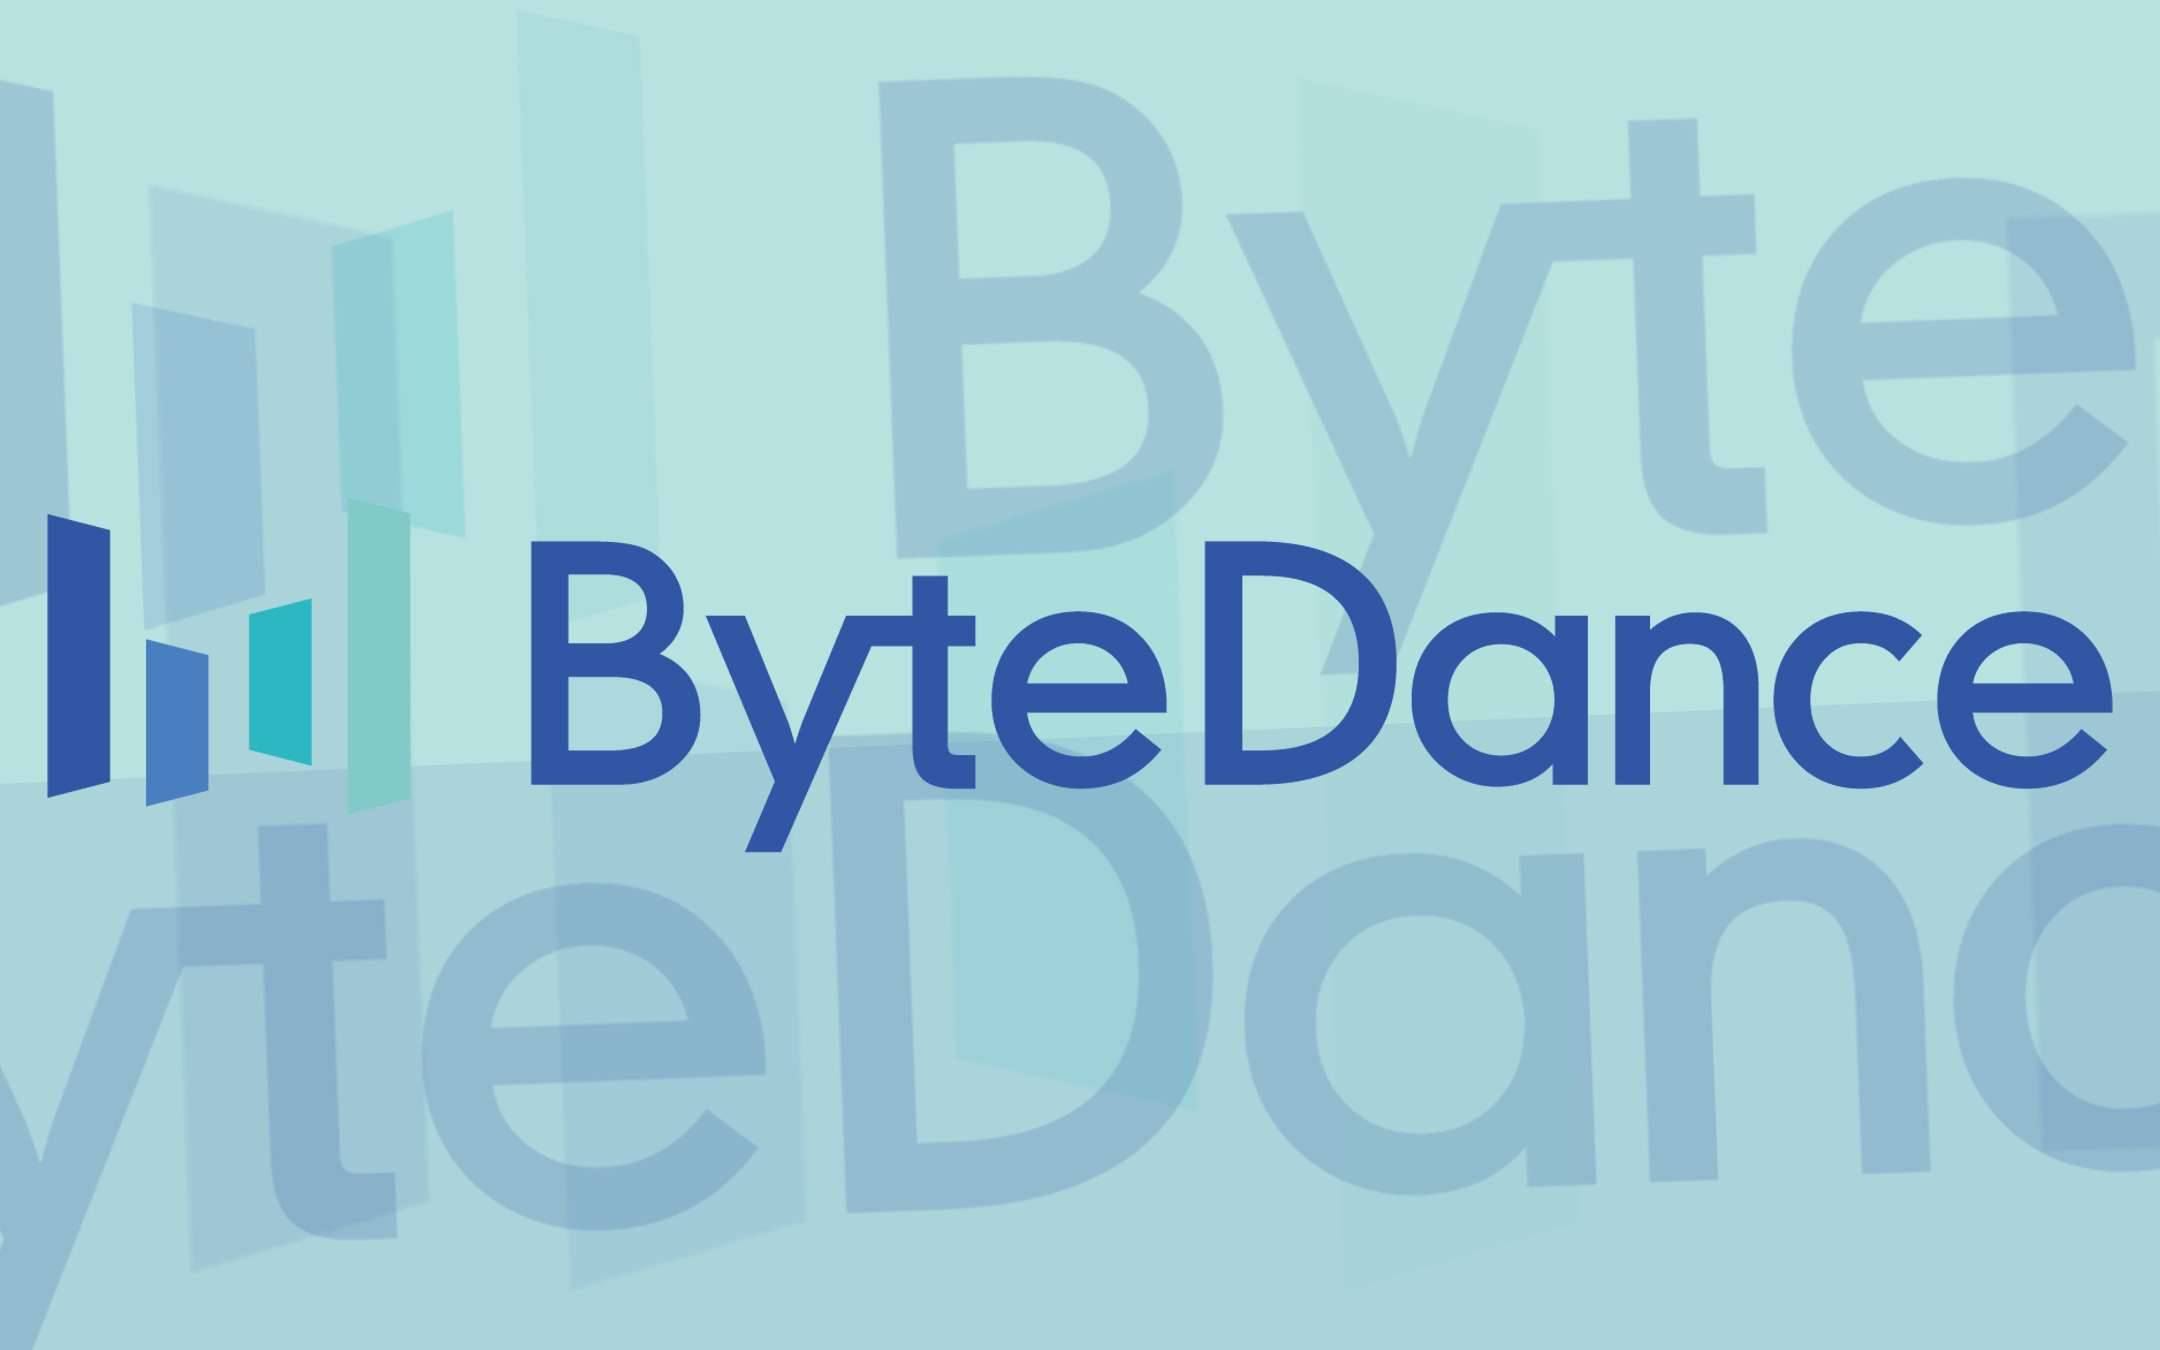 ByteDance accuses Facebook: plagiarism and defamation